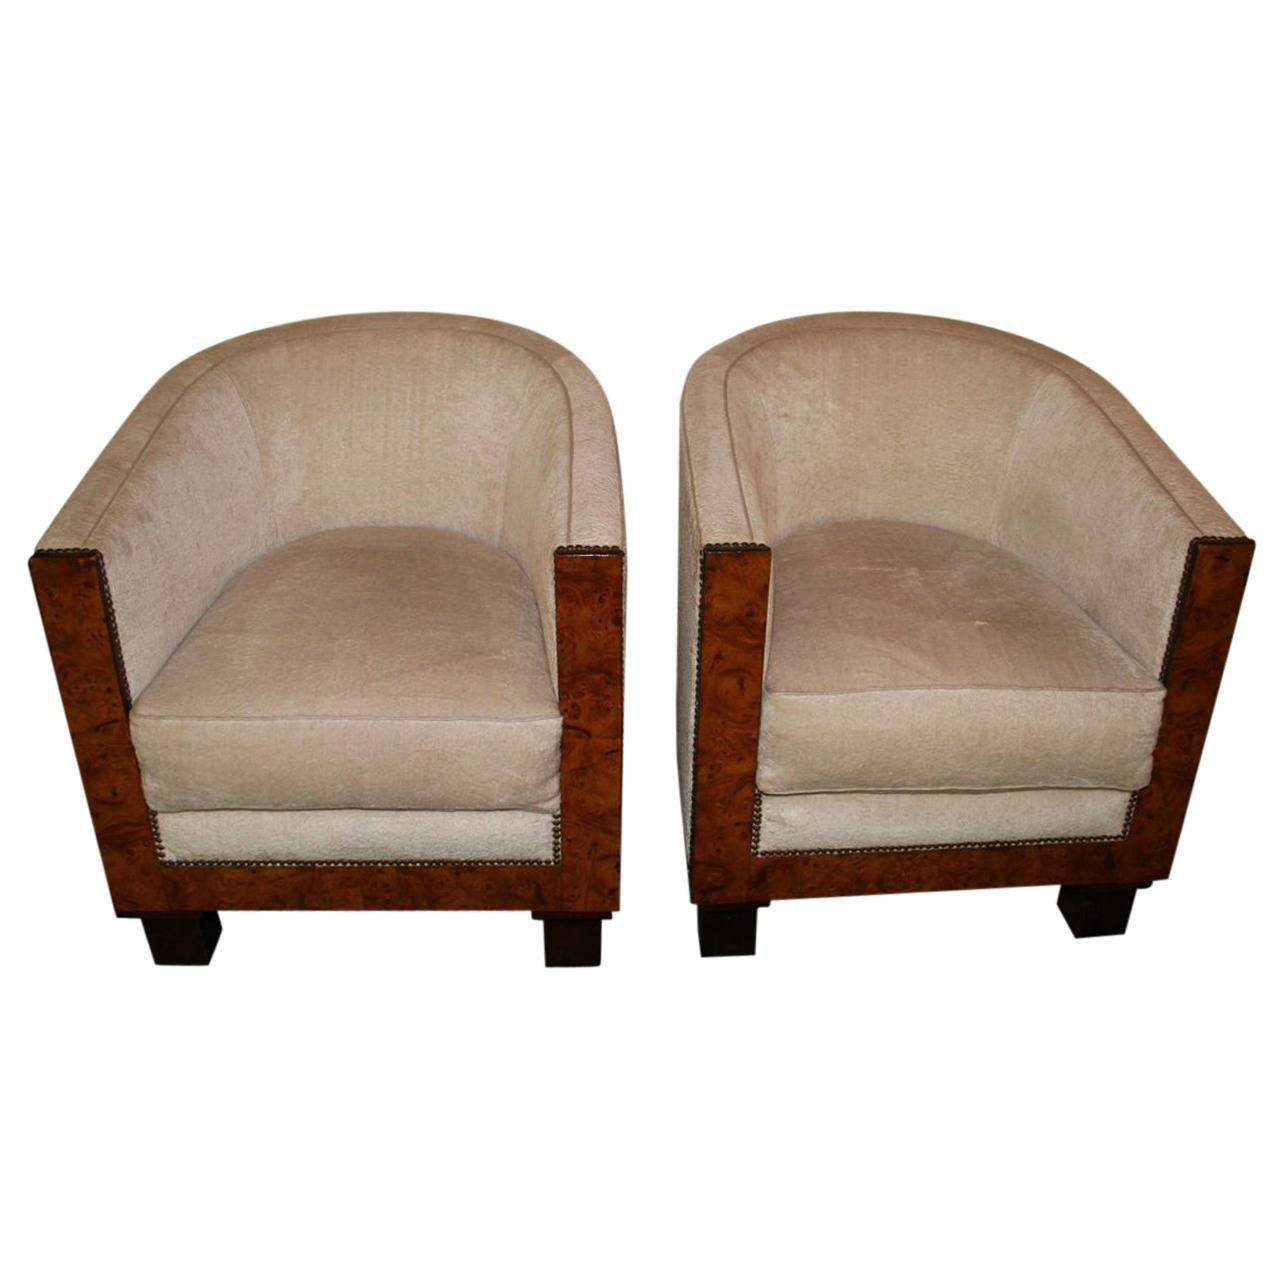 pair of french 1930s art deco barrel chairs for sale at 1stdibs